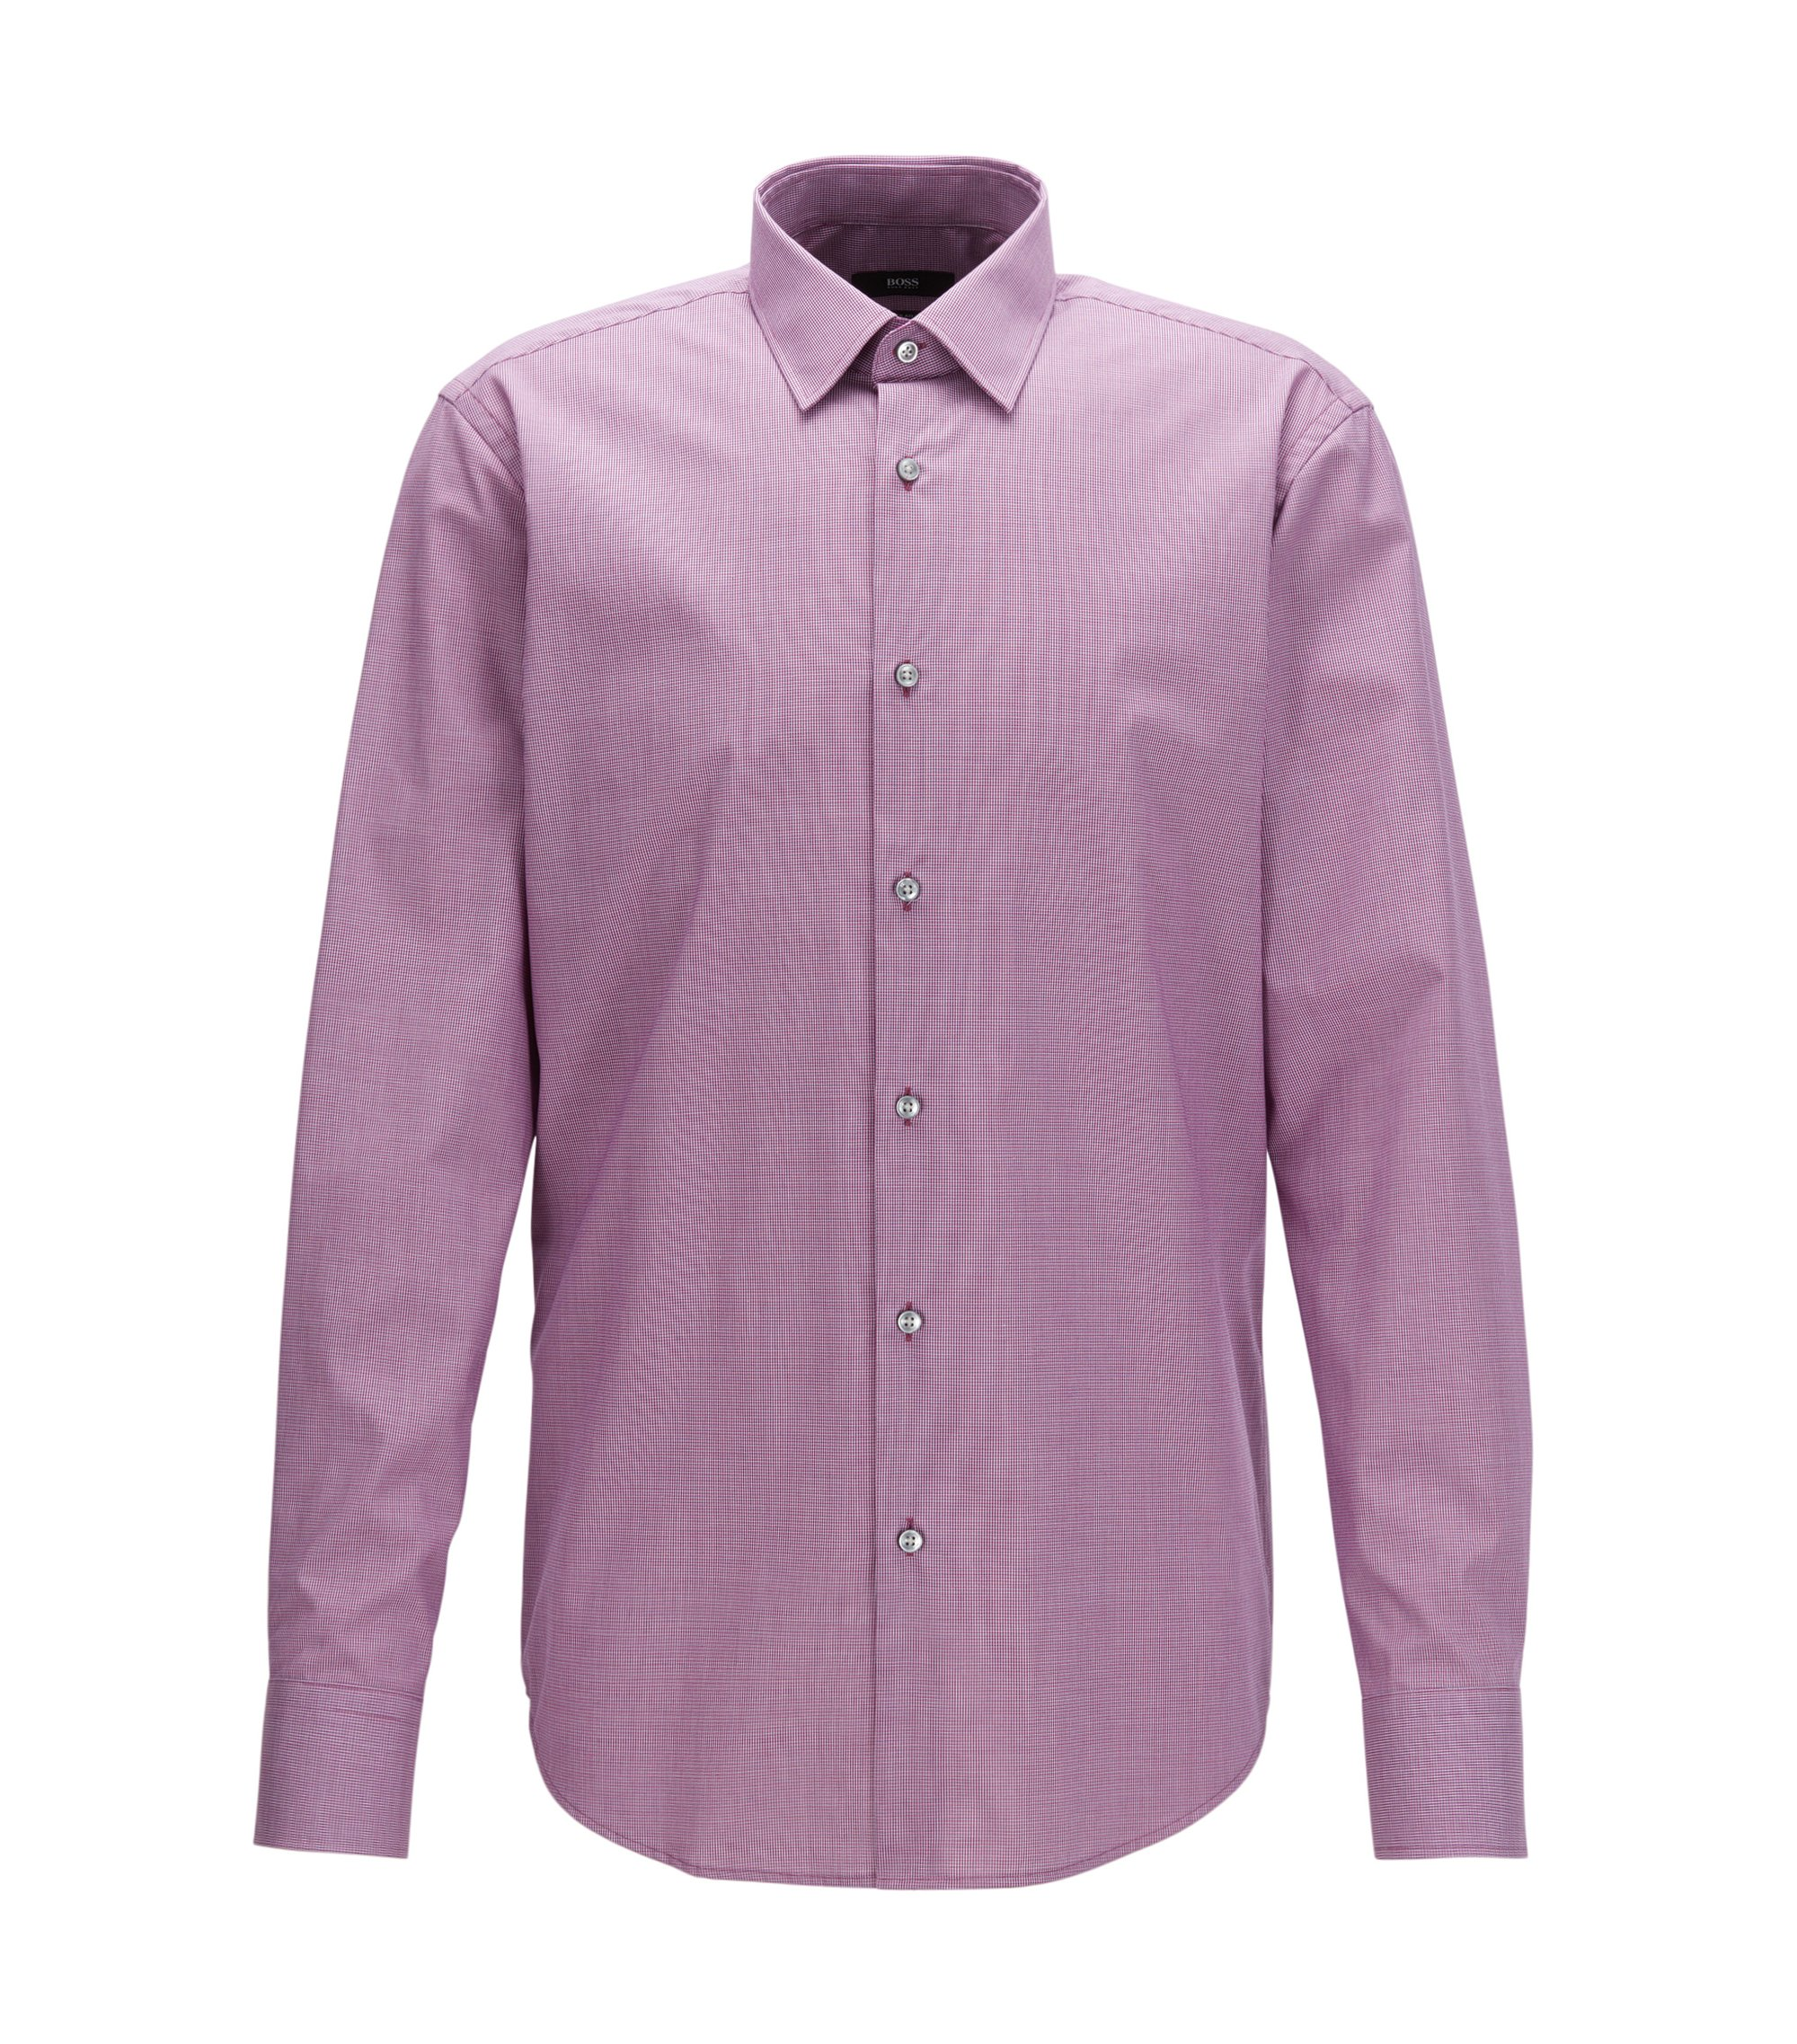 Camicia regular fit in cotone facile da stirare con motivo a quadretti bicolore, Rosa scuro